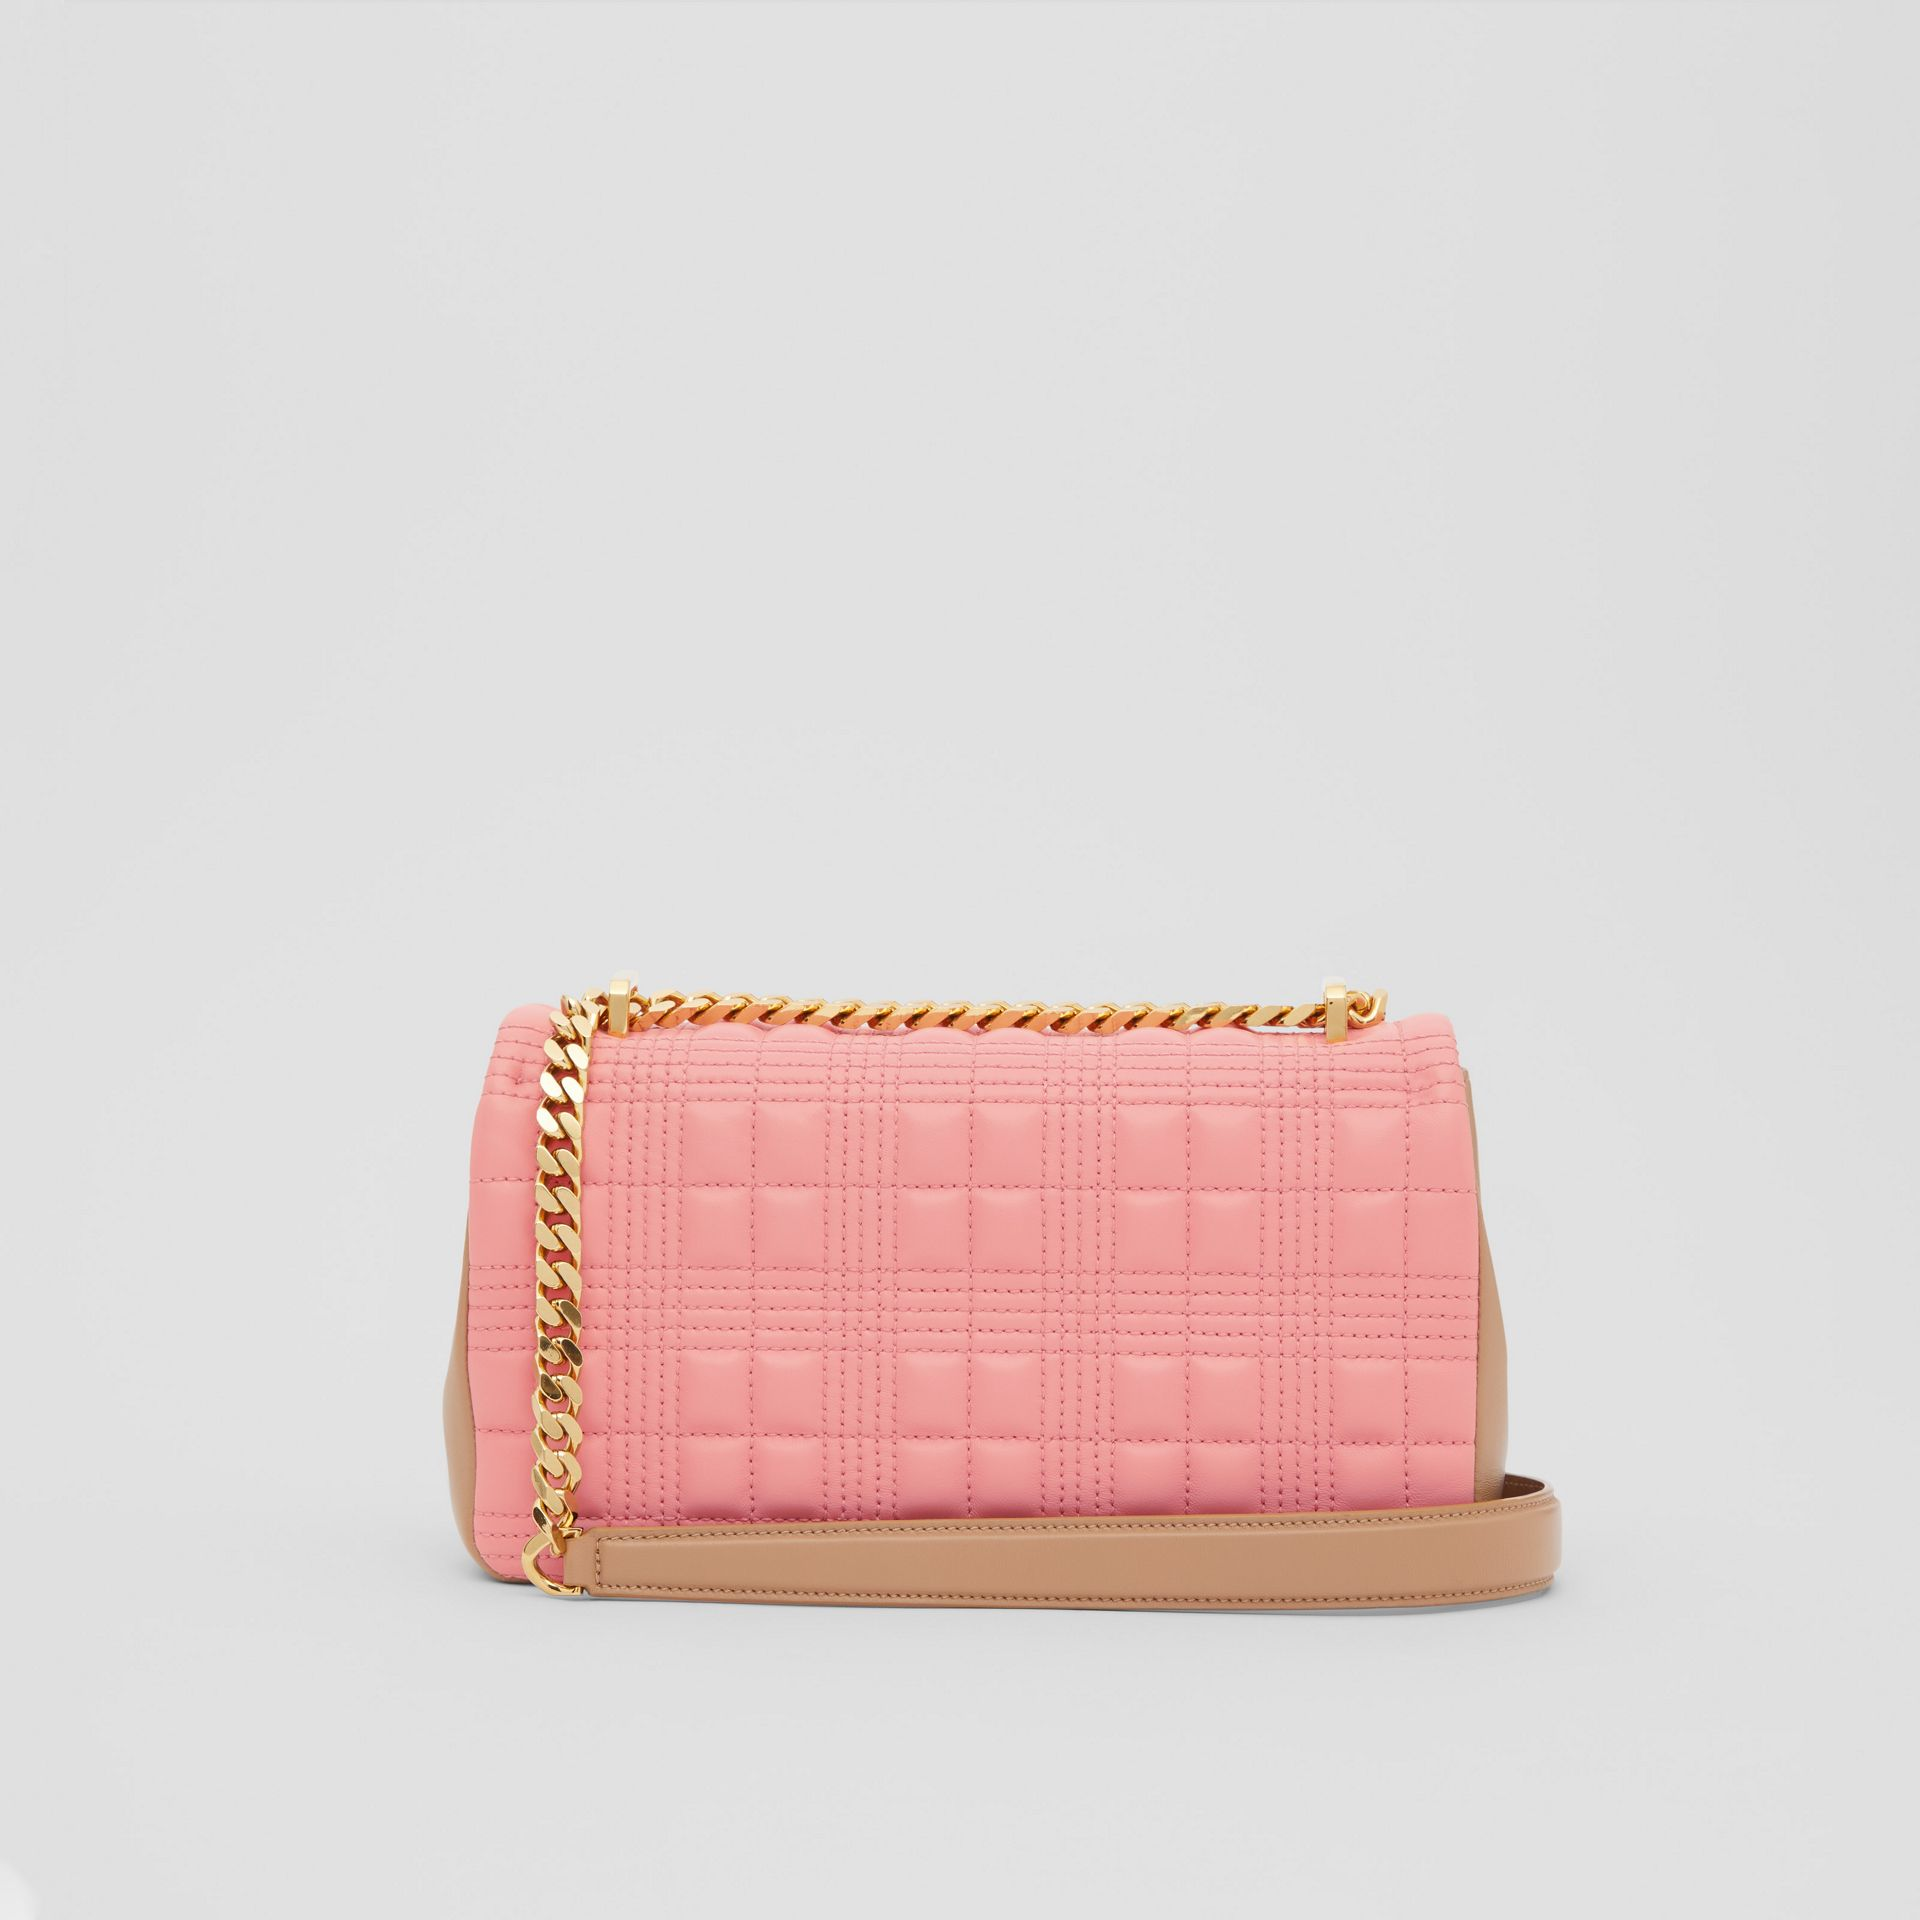 Small Quilted Two-tone Lambskin Lola Bag in Peony/camel - Women | Burberry - gallery image 7